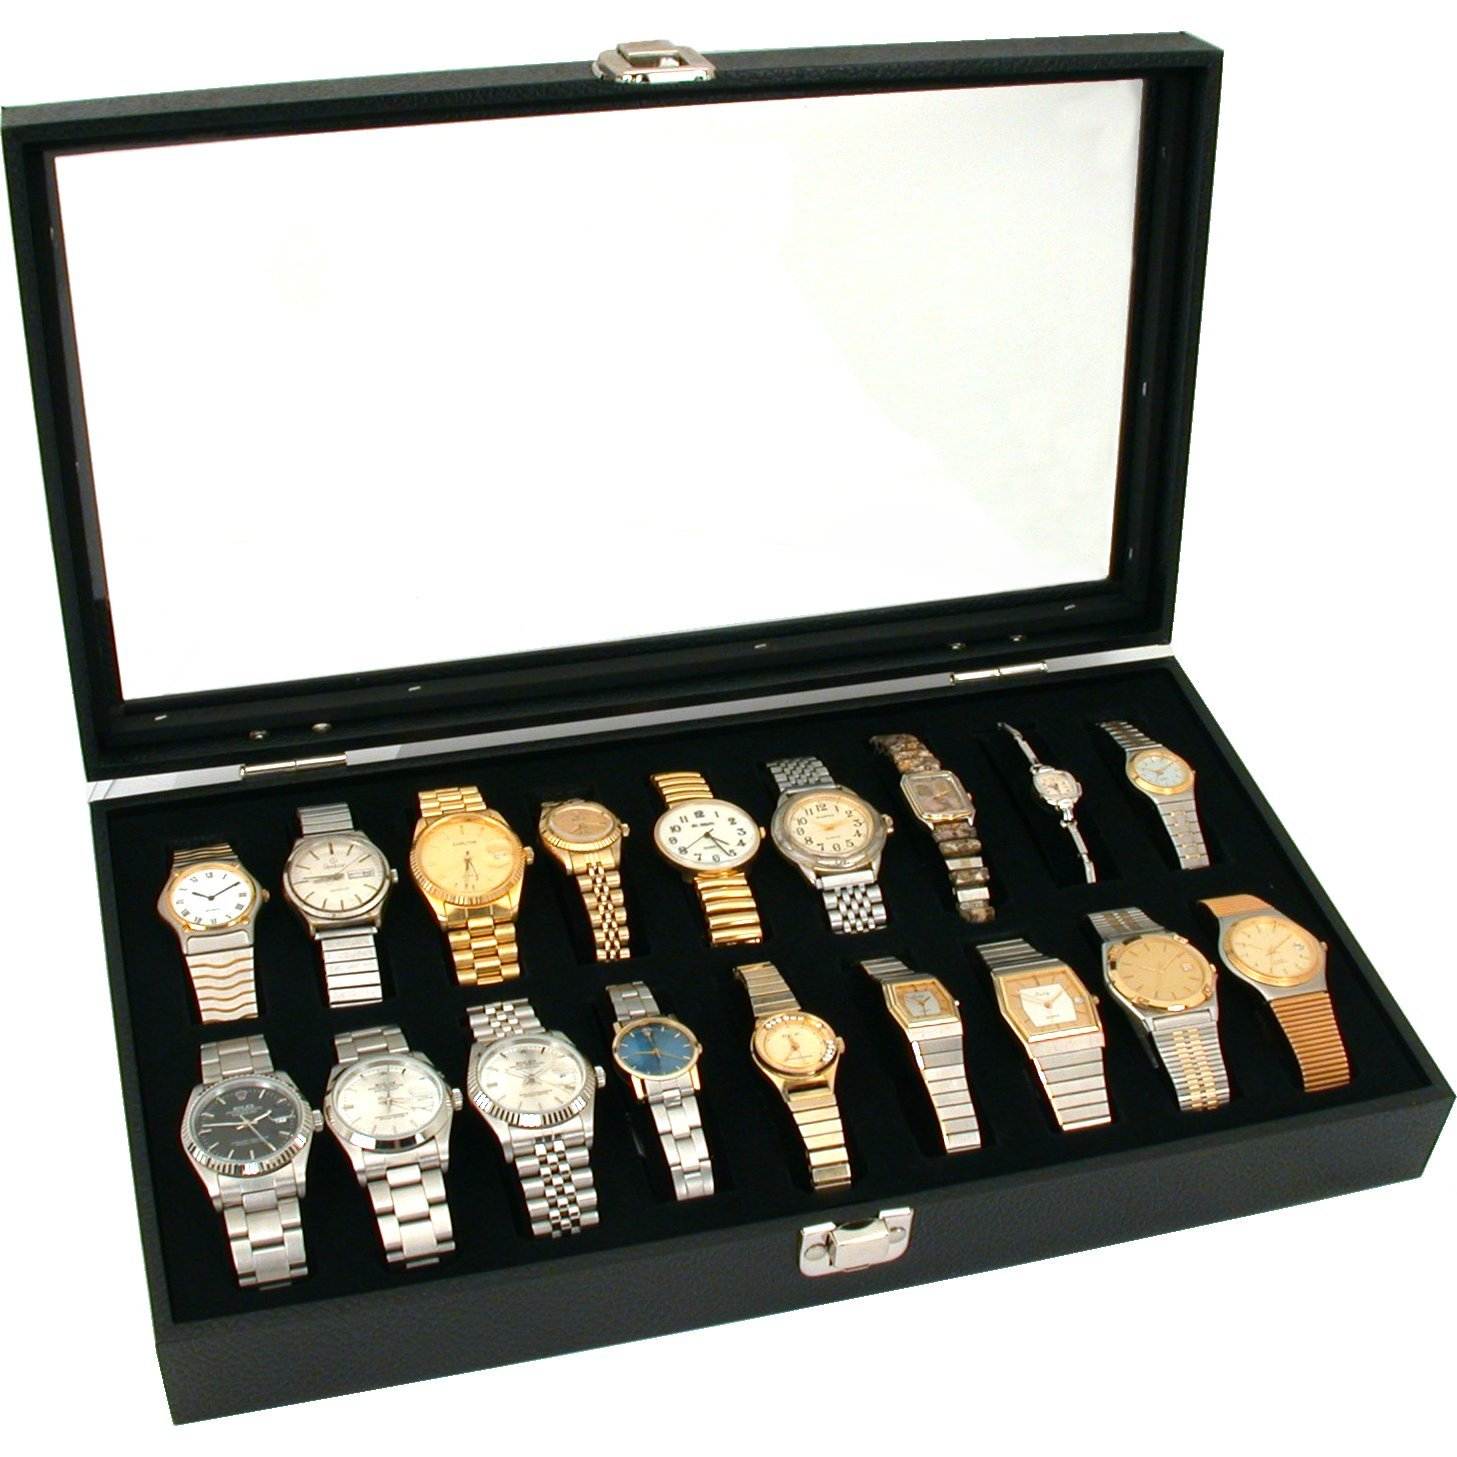 18pc Black Watch Travel Tray Showcase Display Case Unit W/ Plexi plastic Top